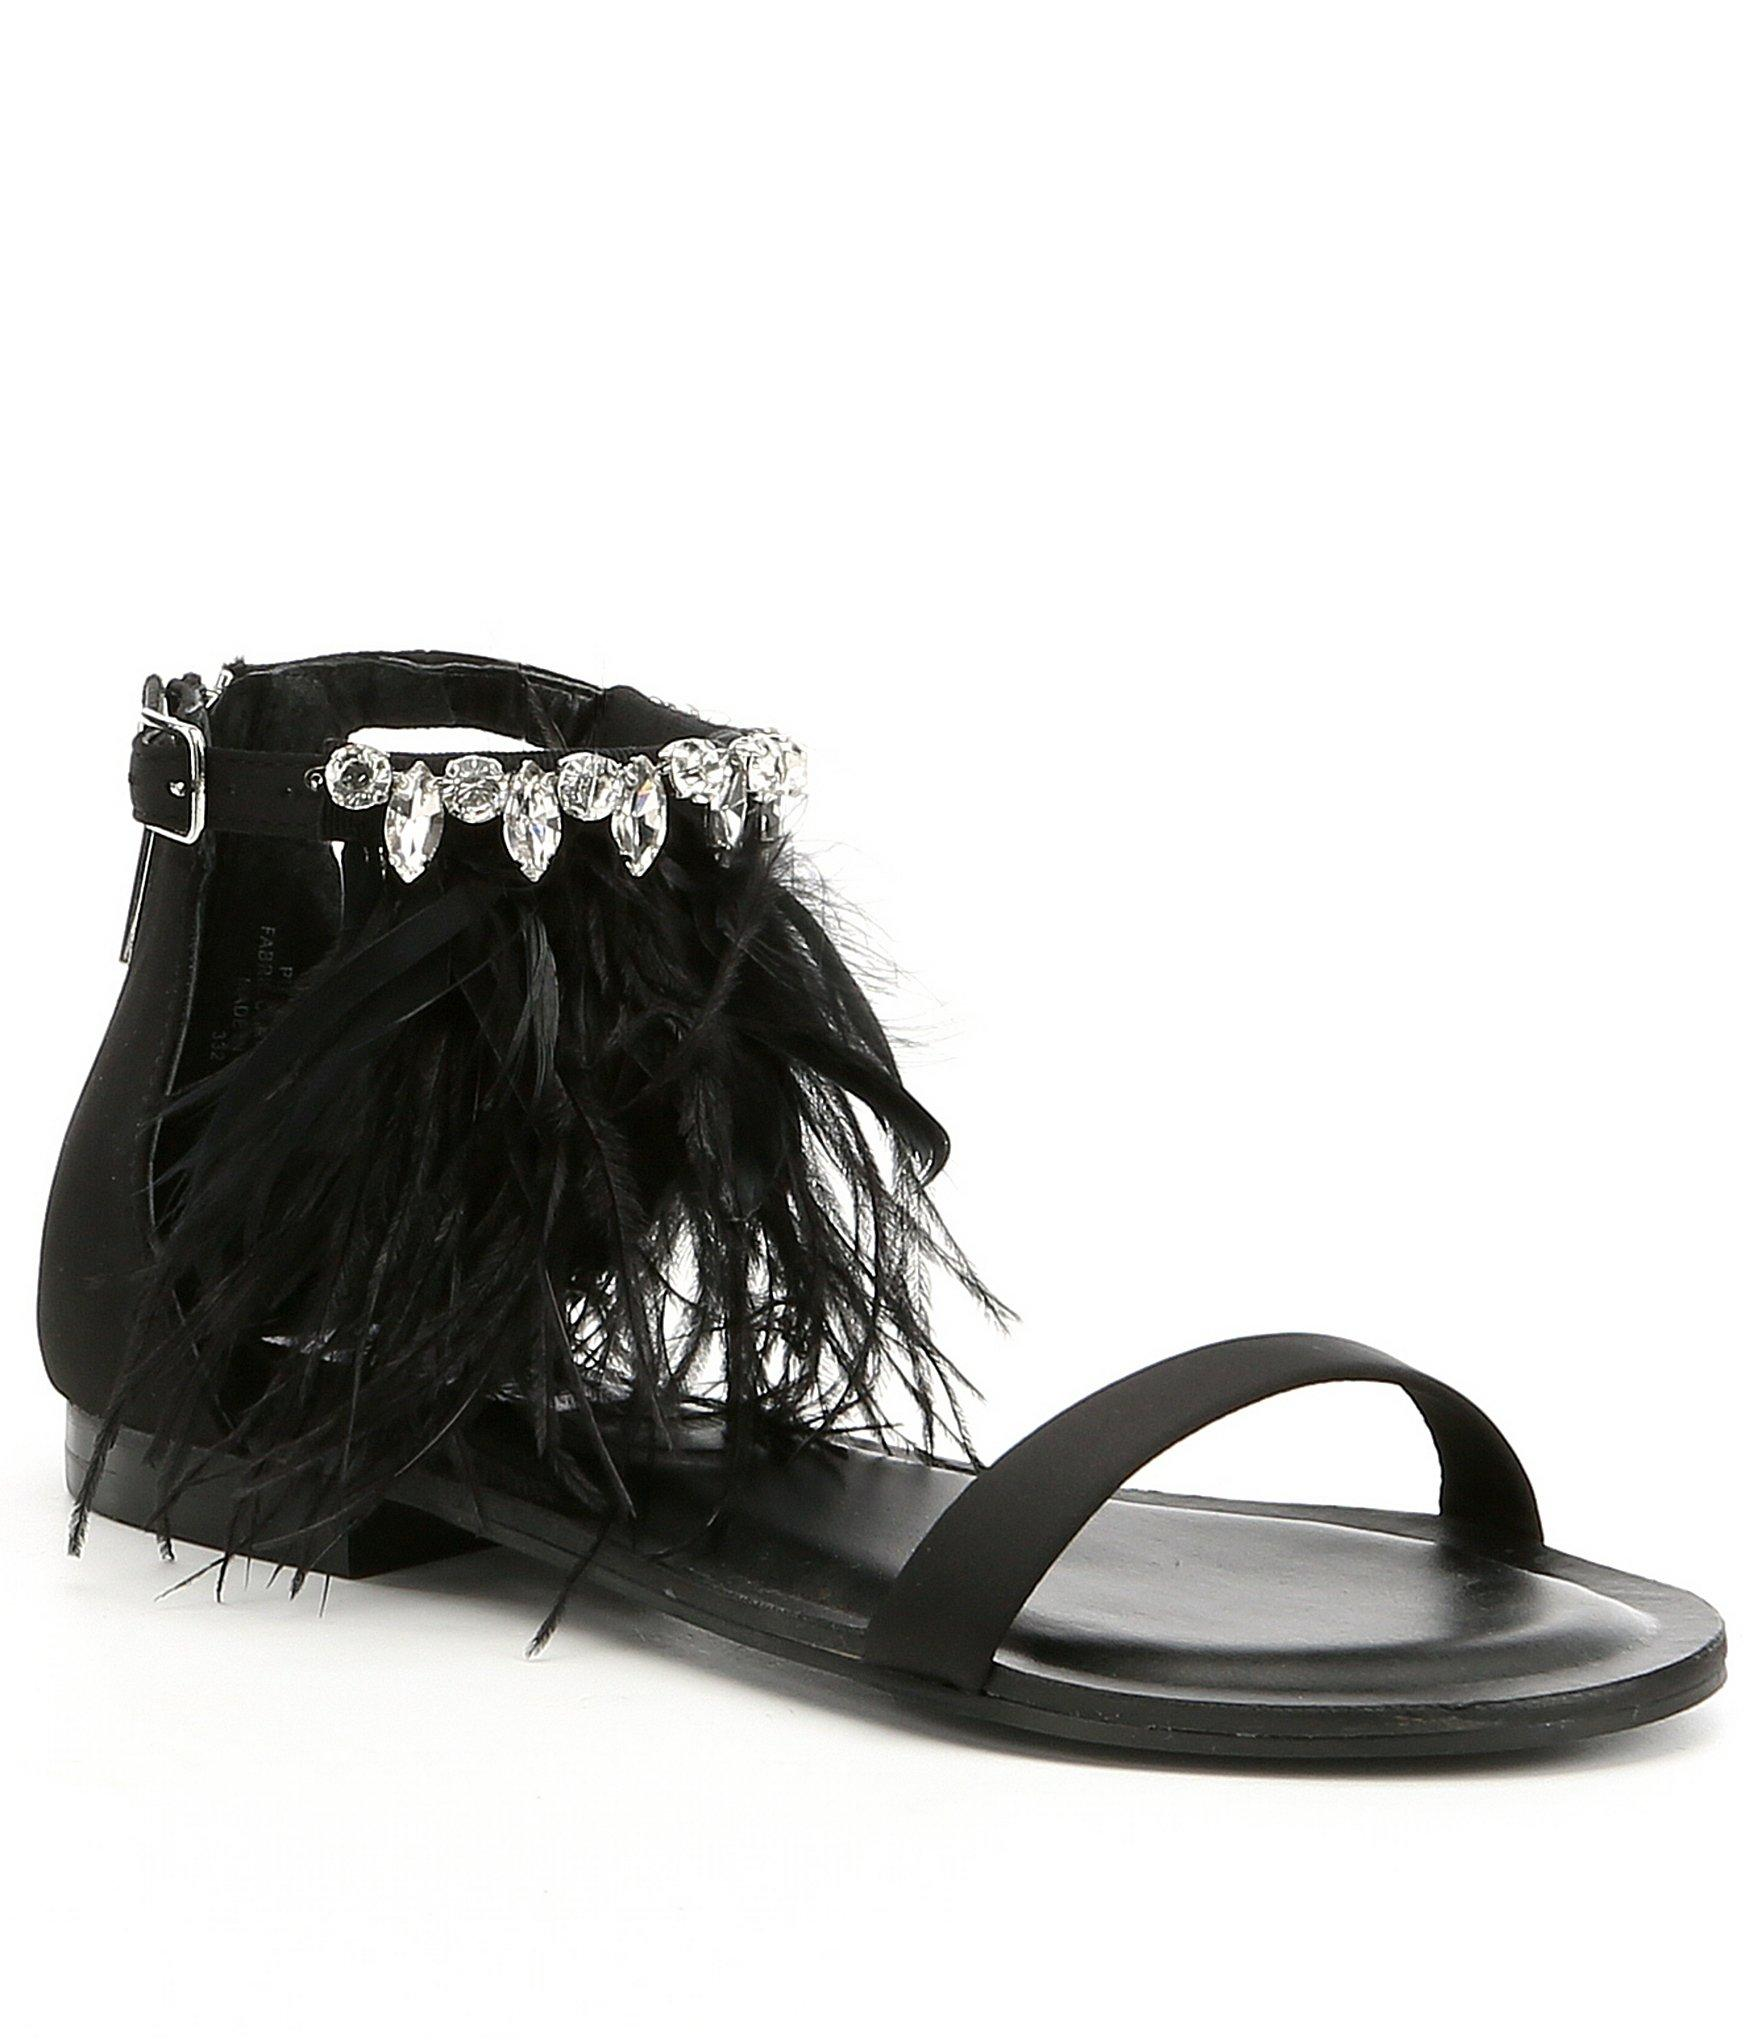 f221b82c6c9b Lyst - Steve Madden Adore Feather Sandals in Black